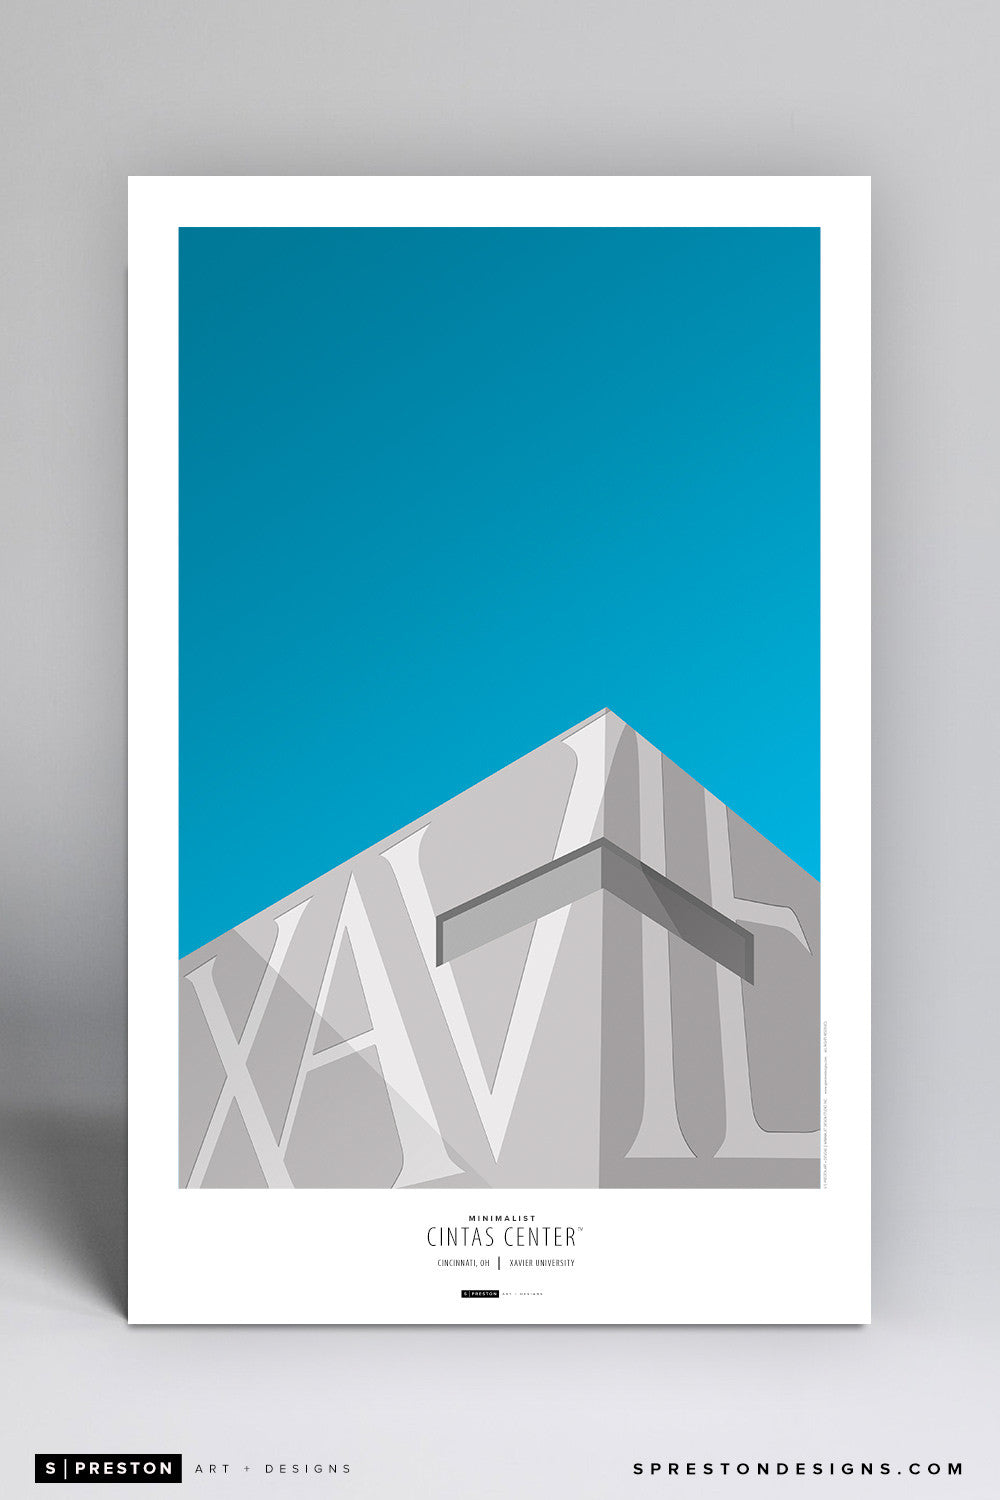 Minimalist Cintas Center Poster Print Xavier University - S Preston